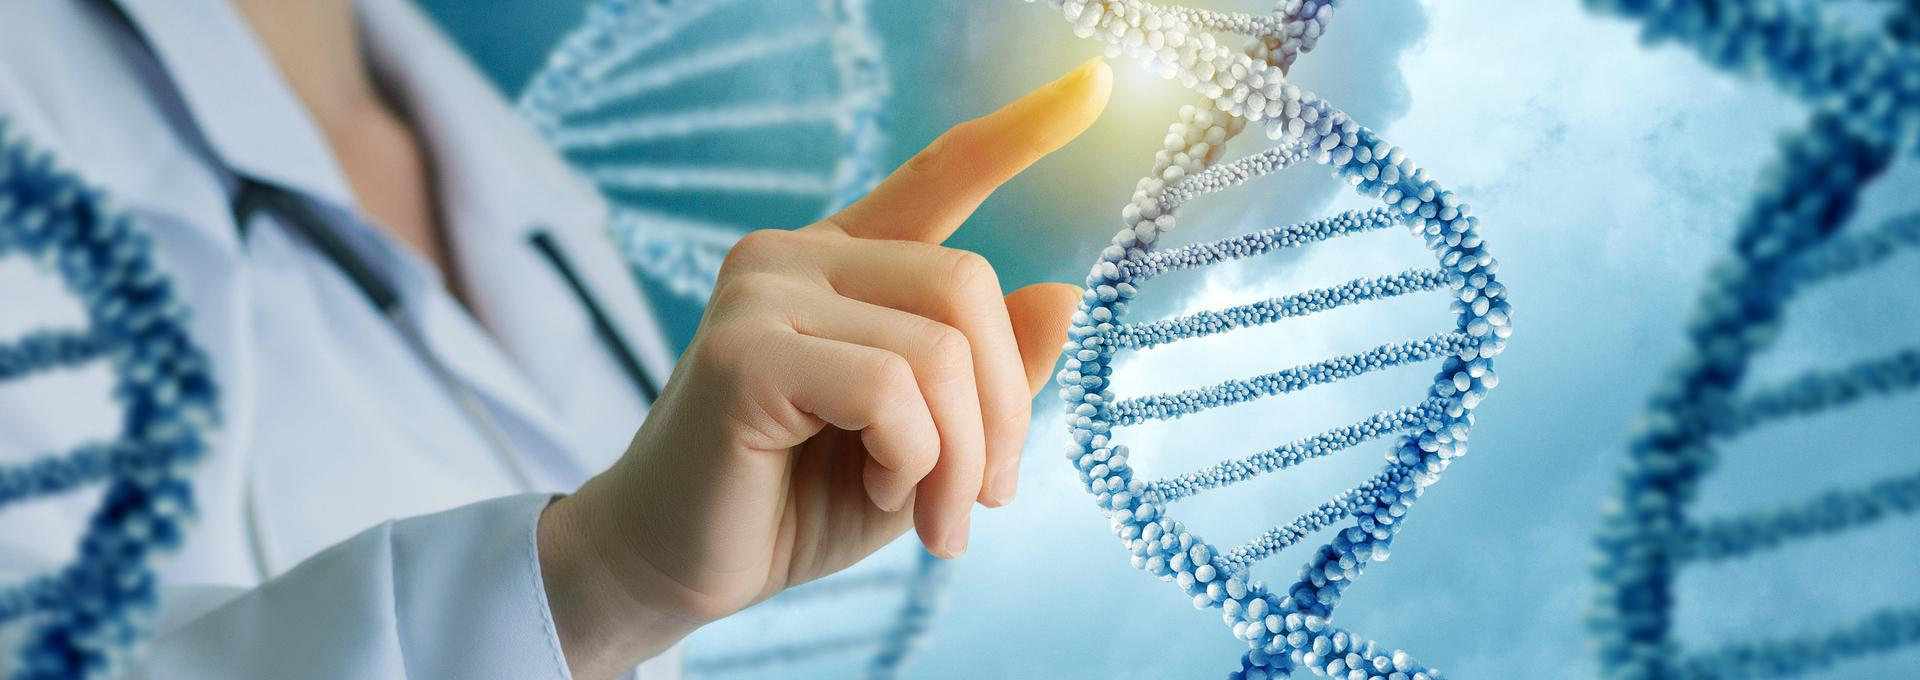 Legal Maternity DNA Tests - info-hero